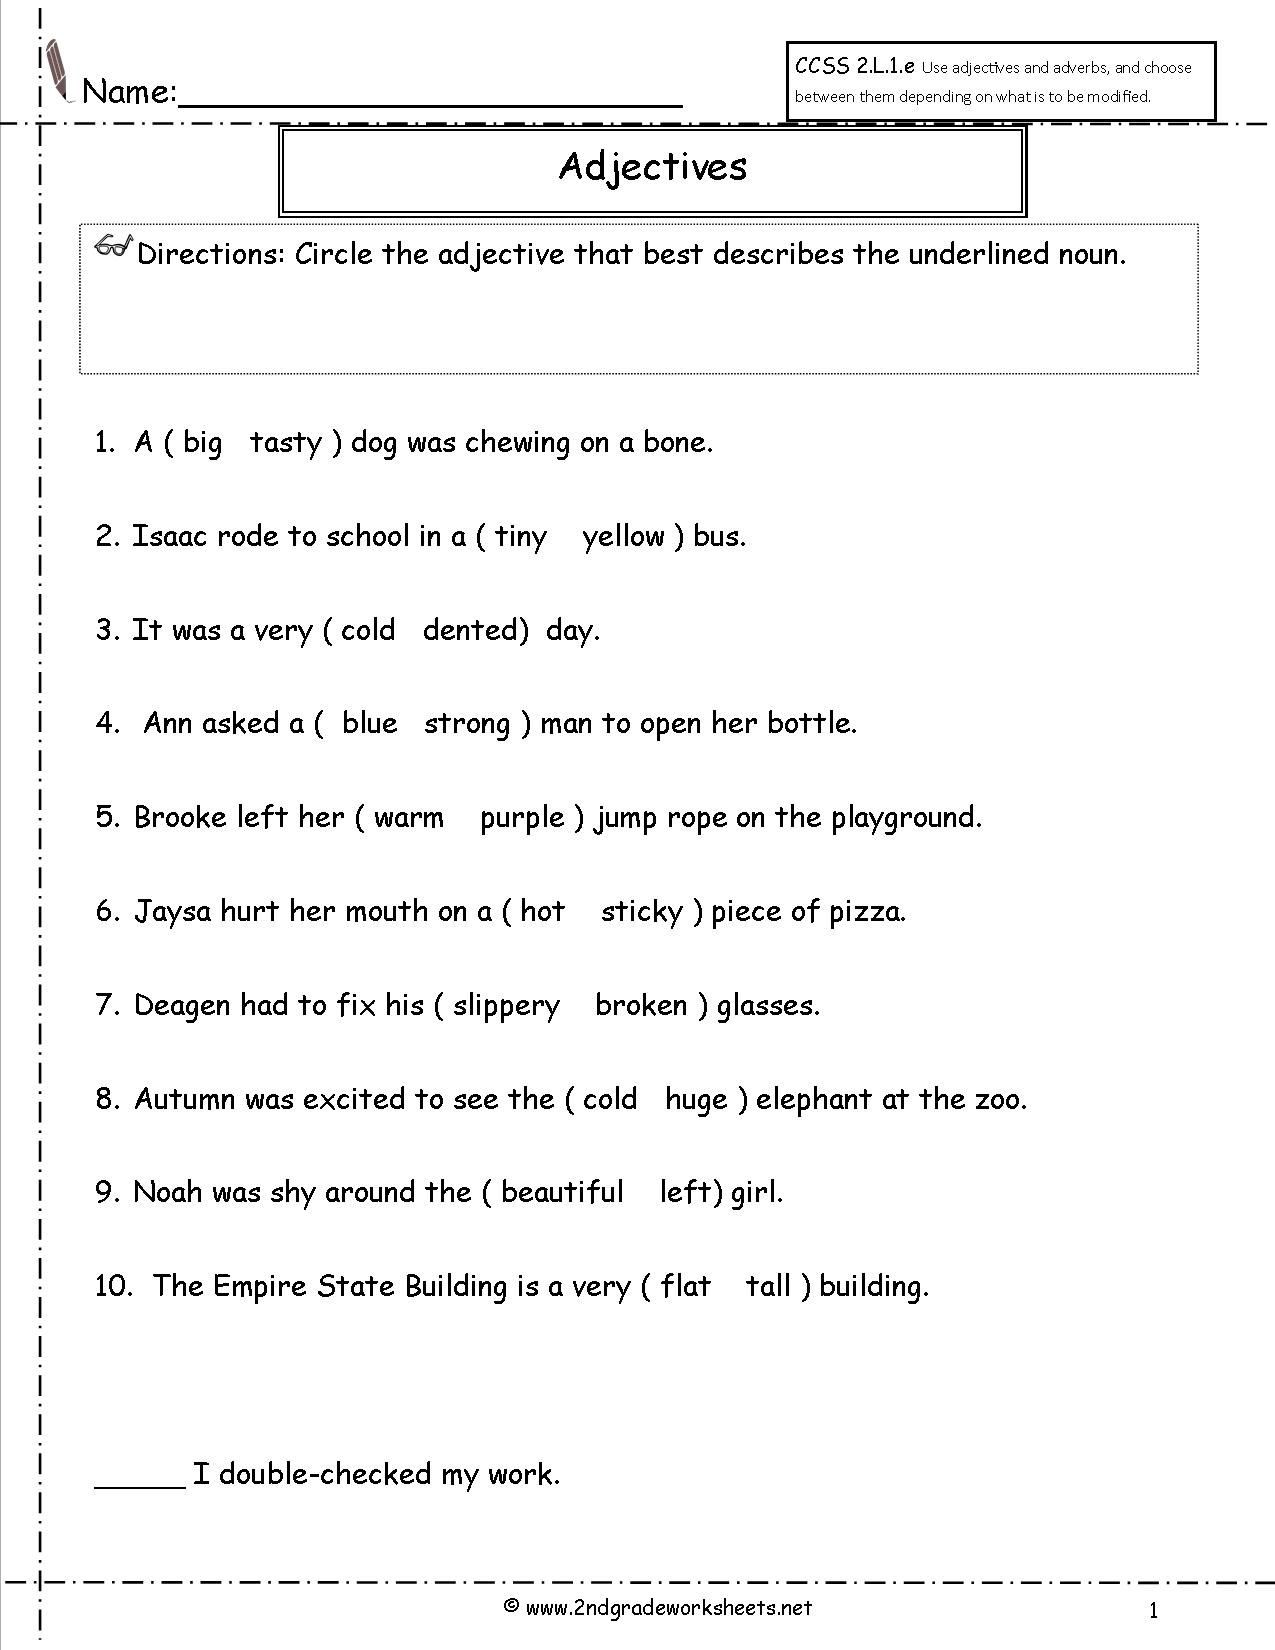 Second Grade Pronoun Worksheets Math Play 2nd Grade Food Guide Coloring Pages Free